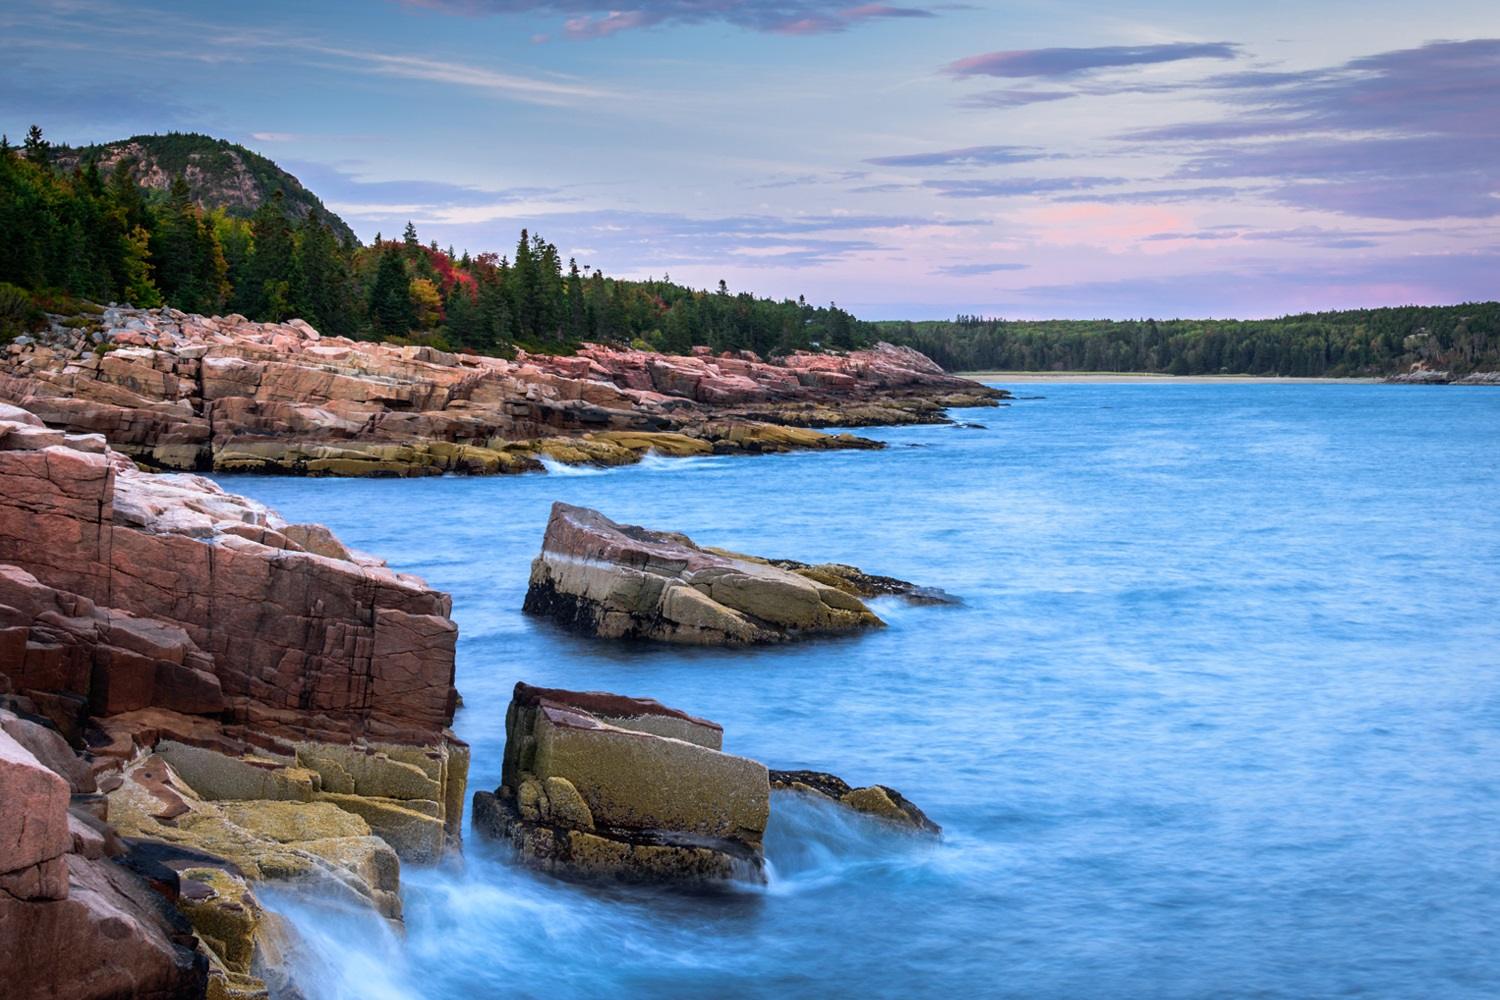 Acadia National Park October 2017 - I meant to write this a few weeks ago, but I didn't. This is my trip to Acadia National Park last month. I had just spent the previous day in Baxter State Park (Maine) and was now on my way to Acadia.